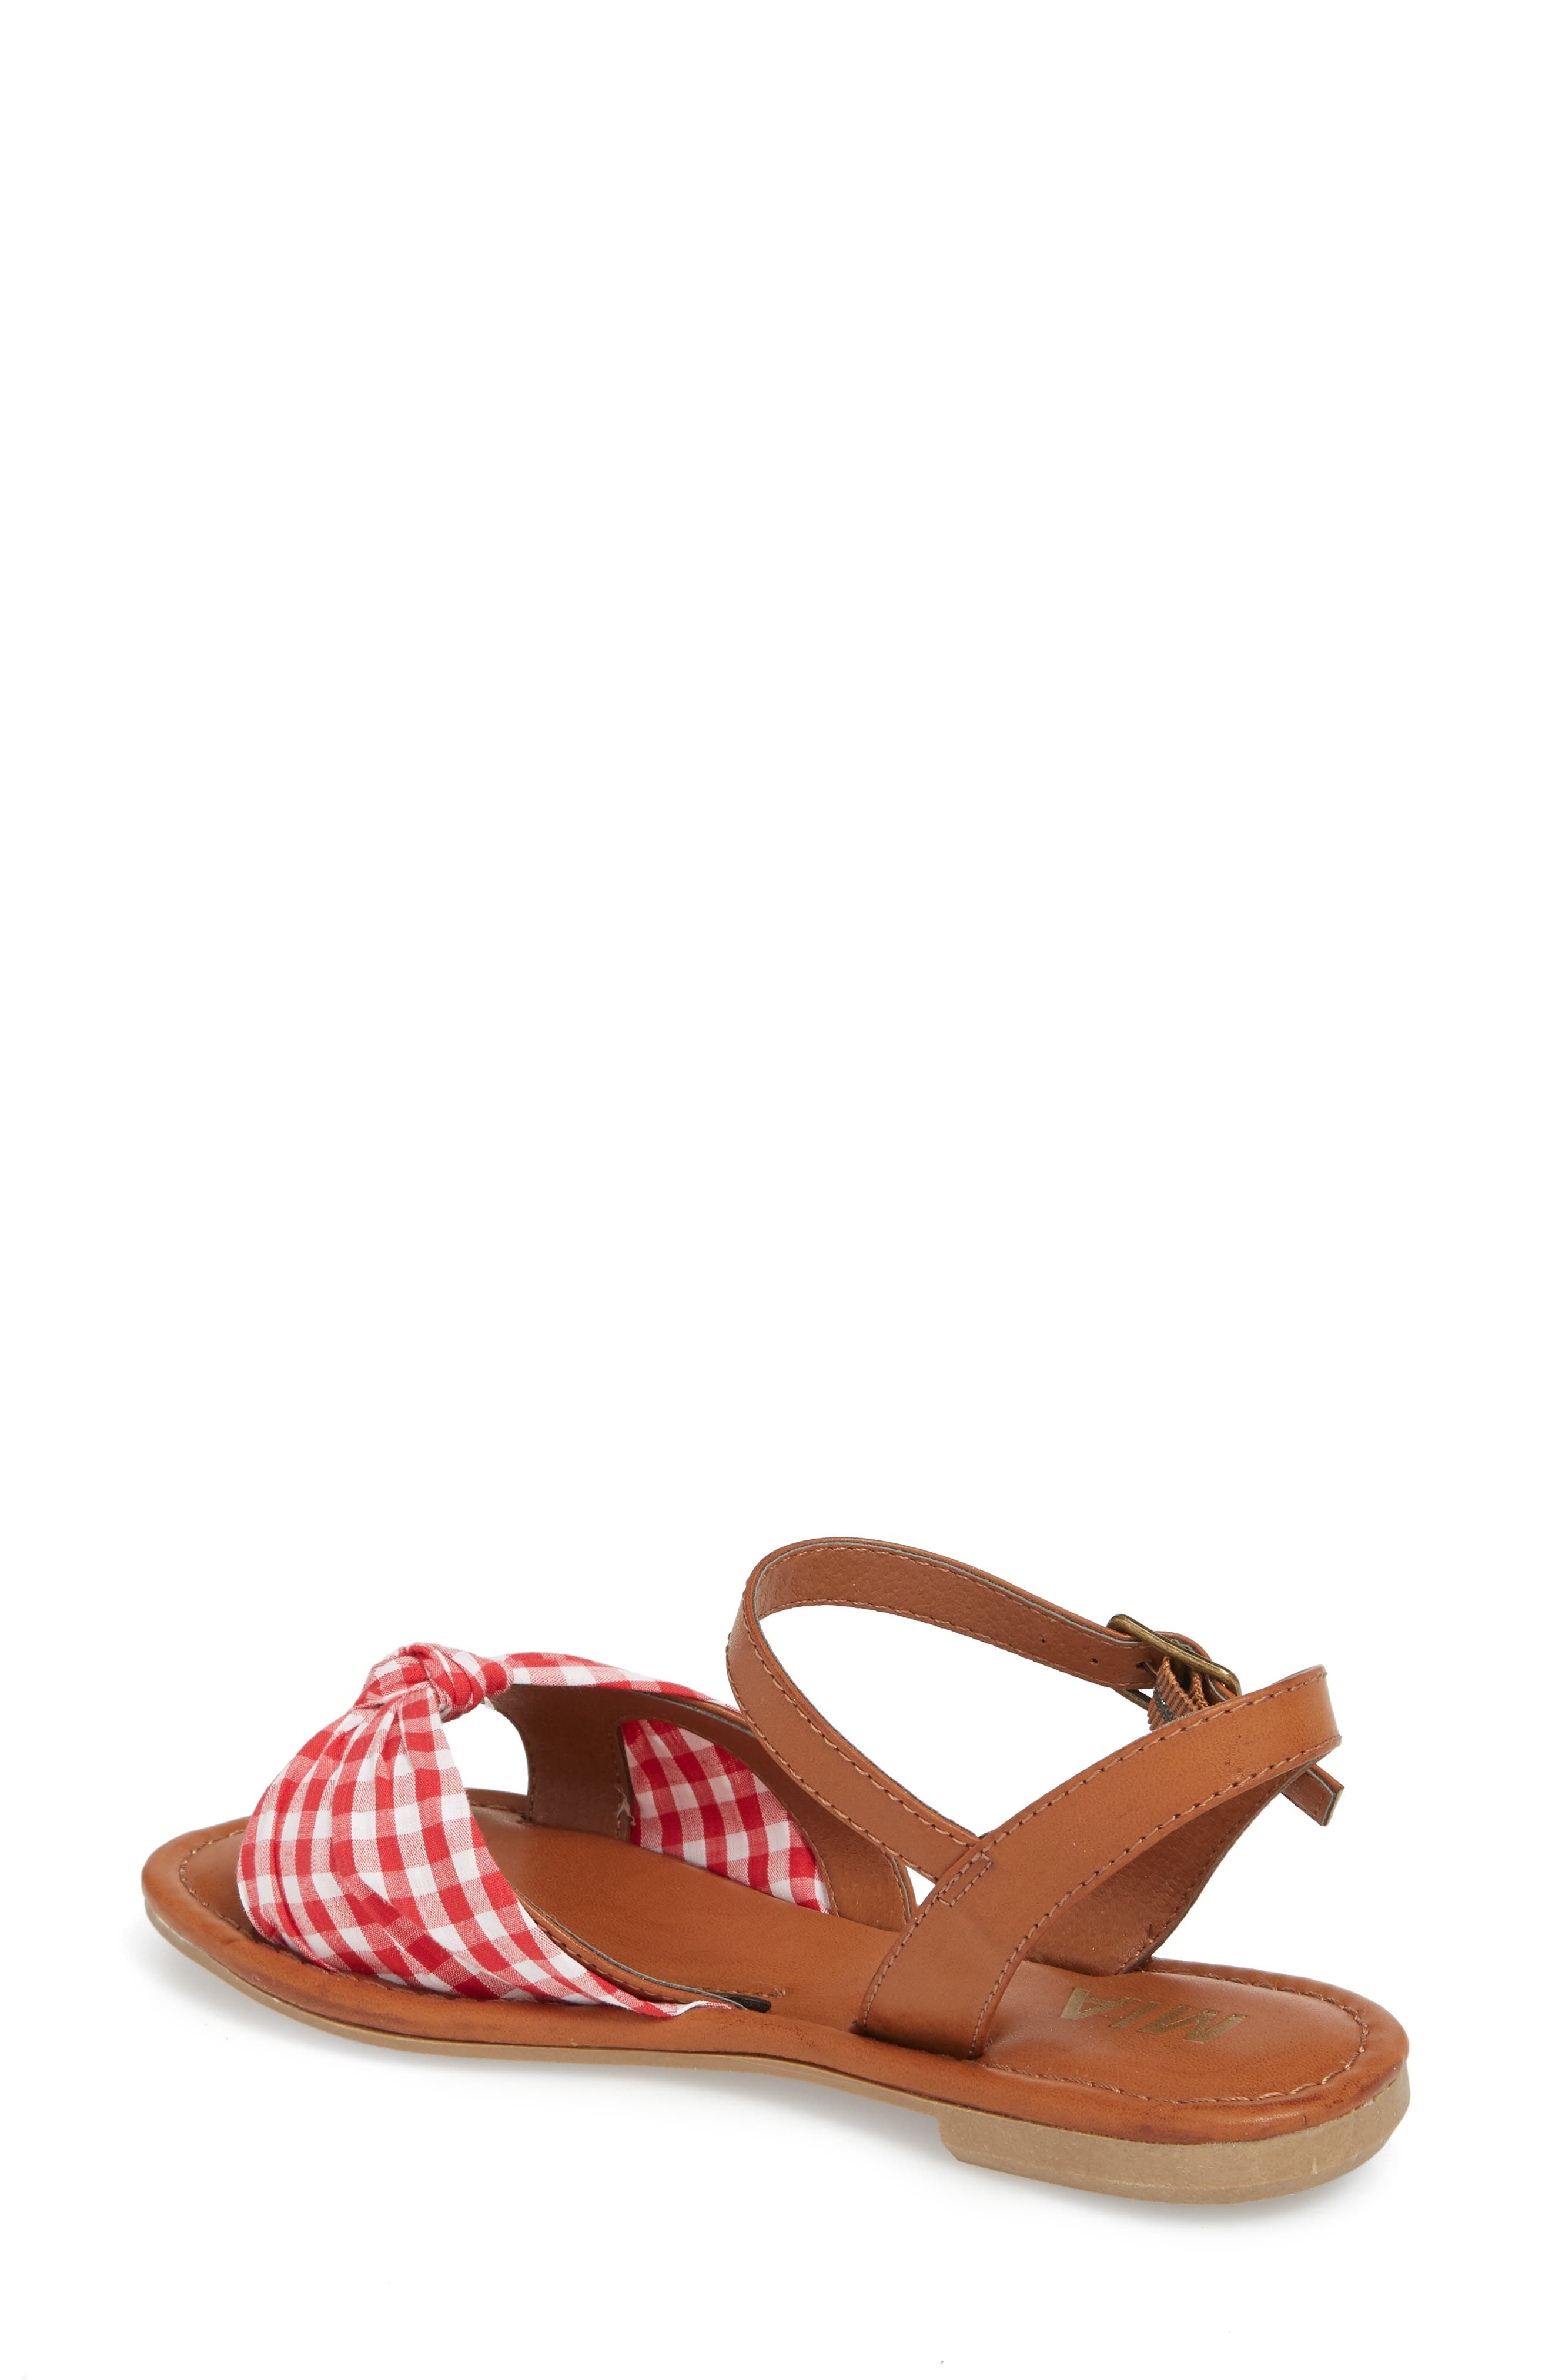 Neala Bow Sandal,                             Alternate thumbnail 2, color,                             RED/ WHITE FABRIC